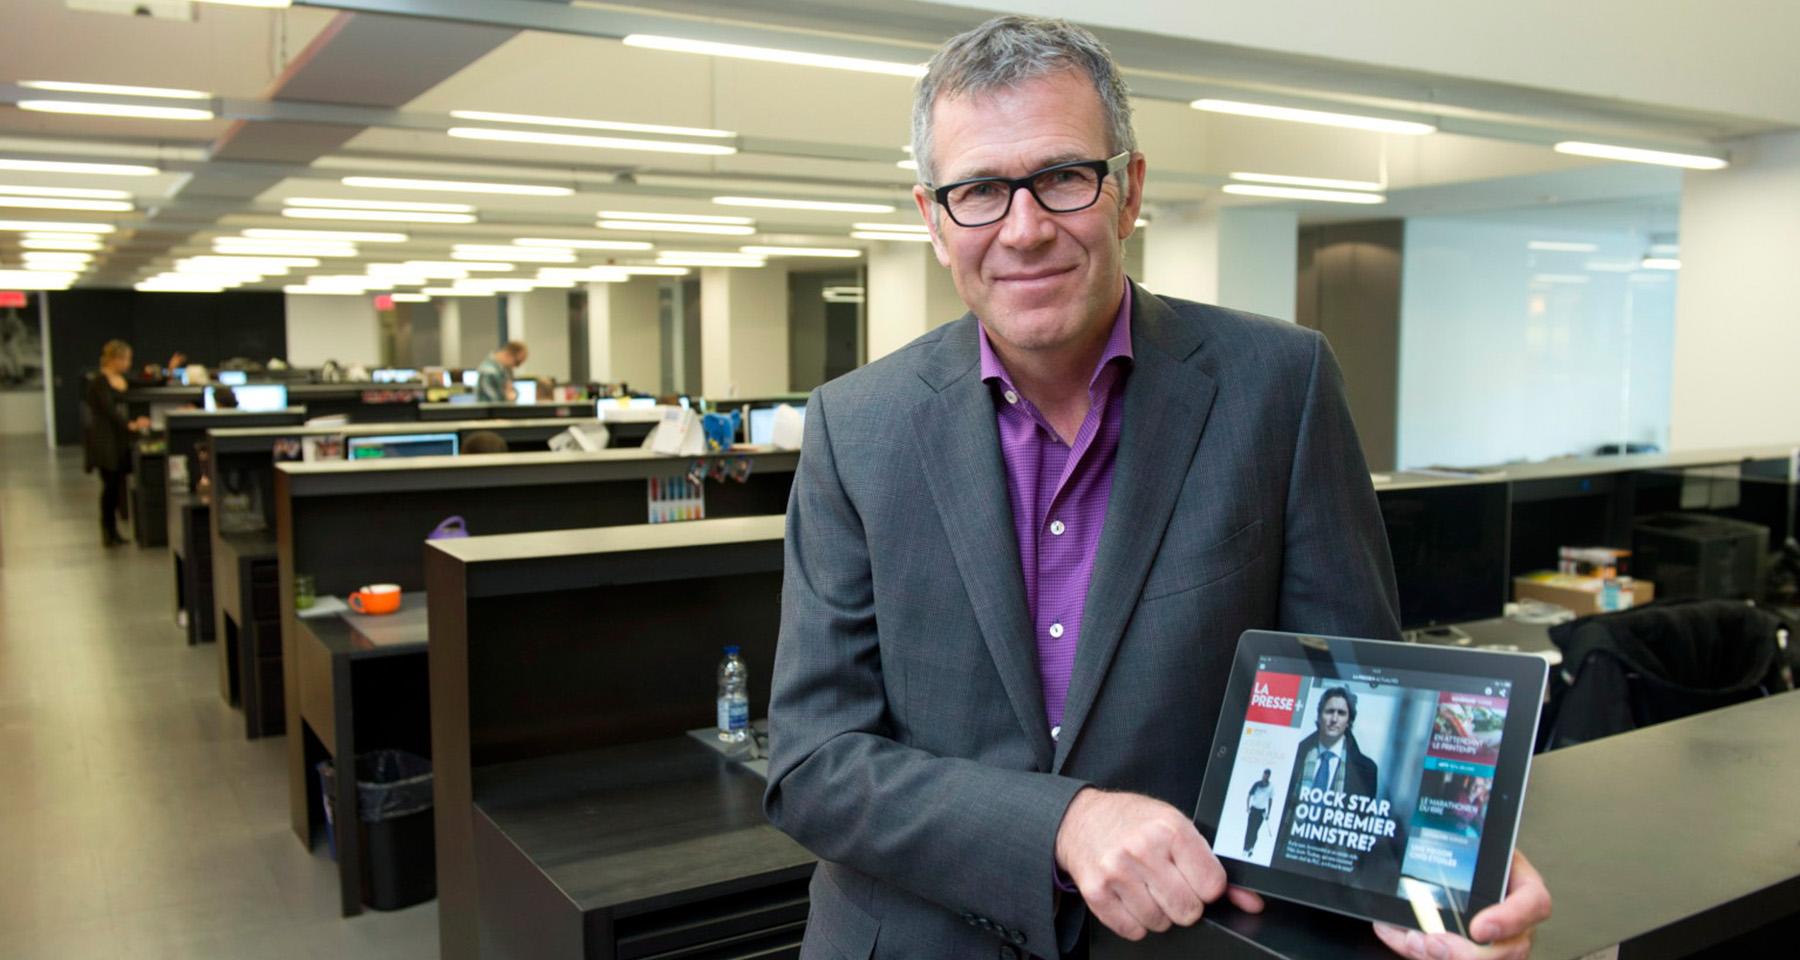 La Presse sees print-comparable ad rates 5 months after ending weekday print product